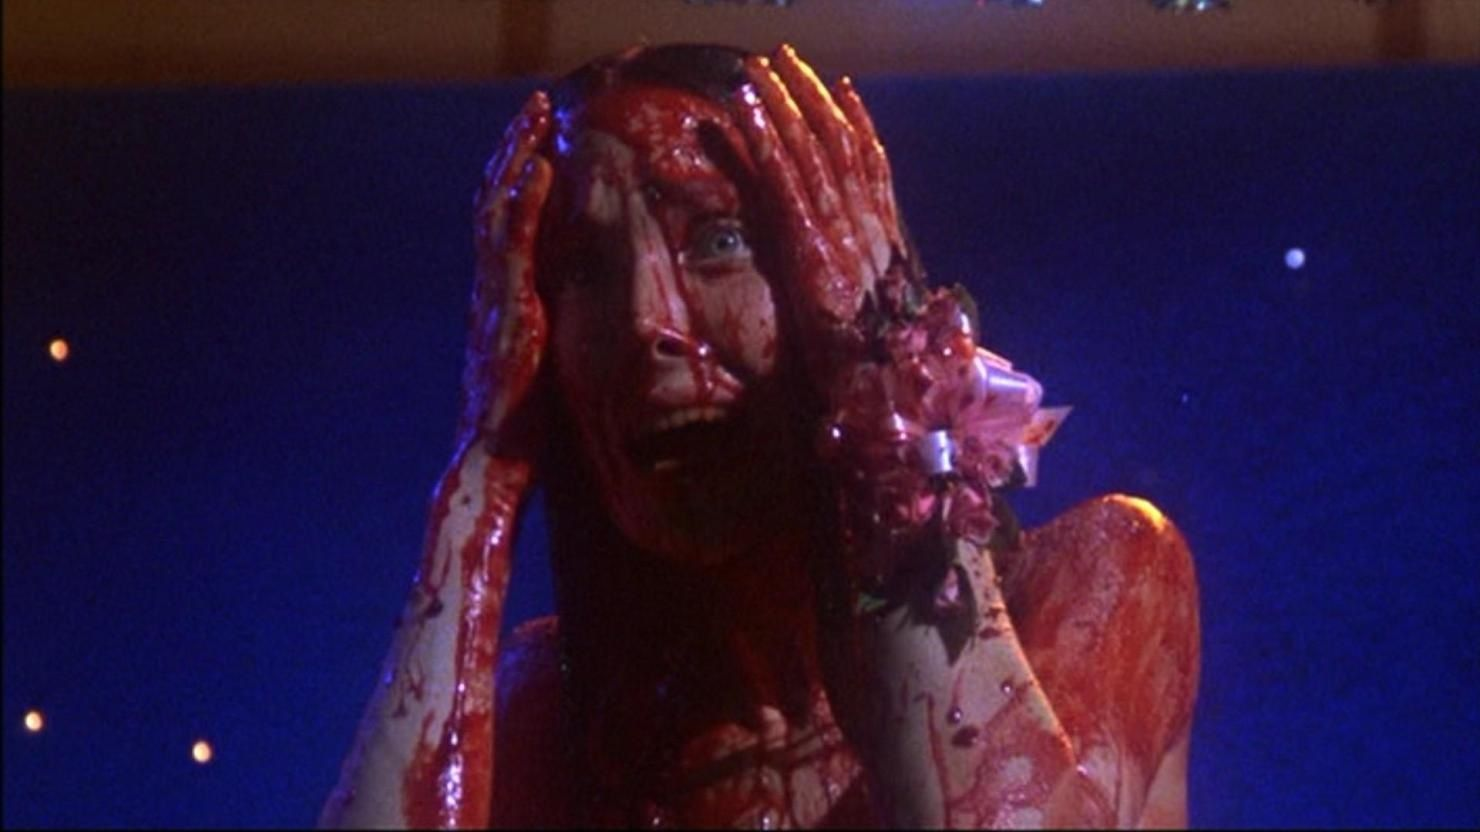 'Carrie' Will Reportedly Be Adapted For TV, With A Twist